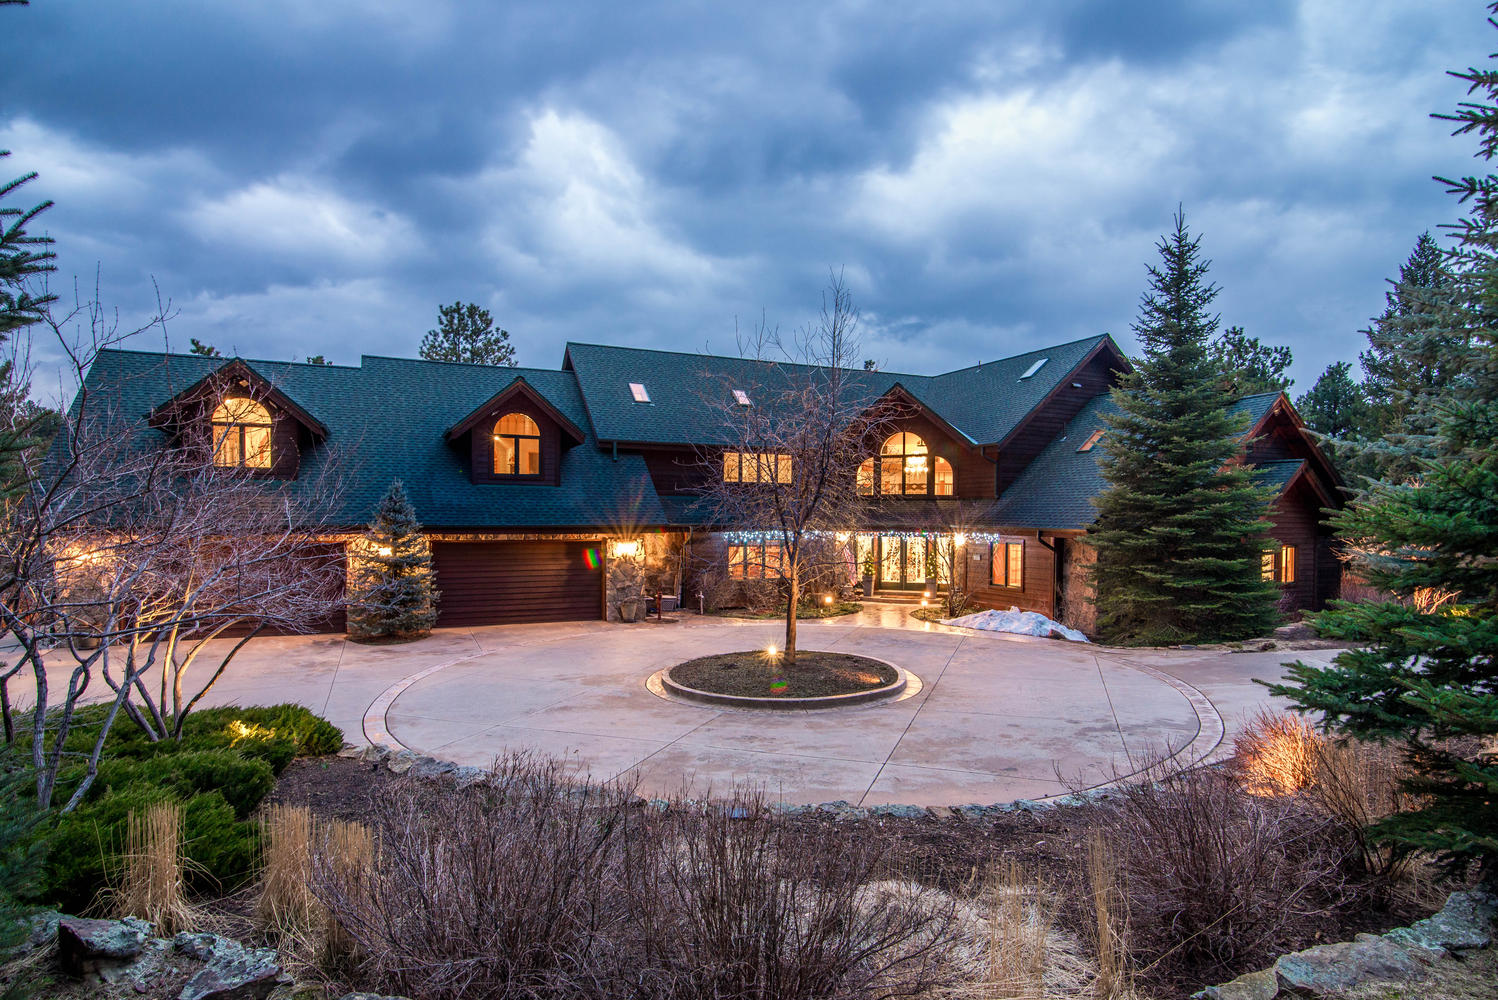 Single Family Home for Active at Majestic Estate Nestled on 42.42 Acres 28775 Cragmont Drive Evergreen, Colorado 80439 United States